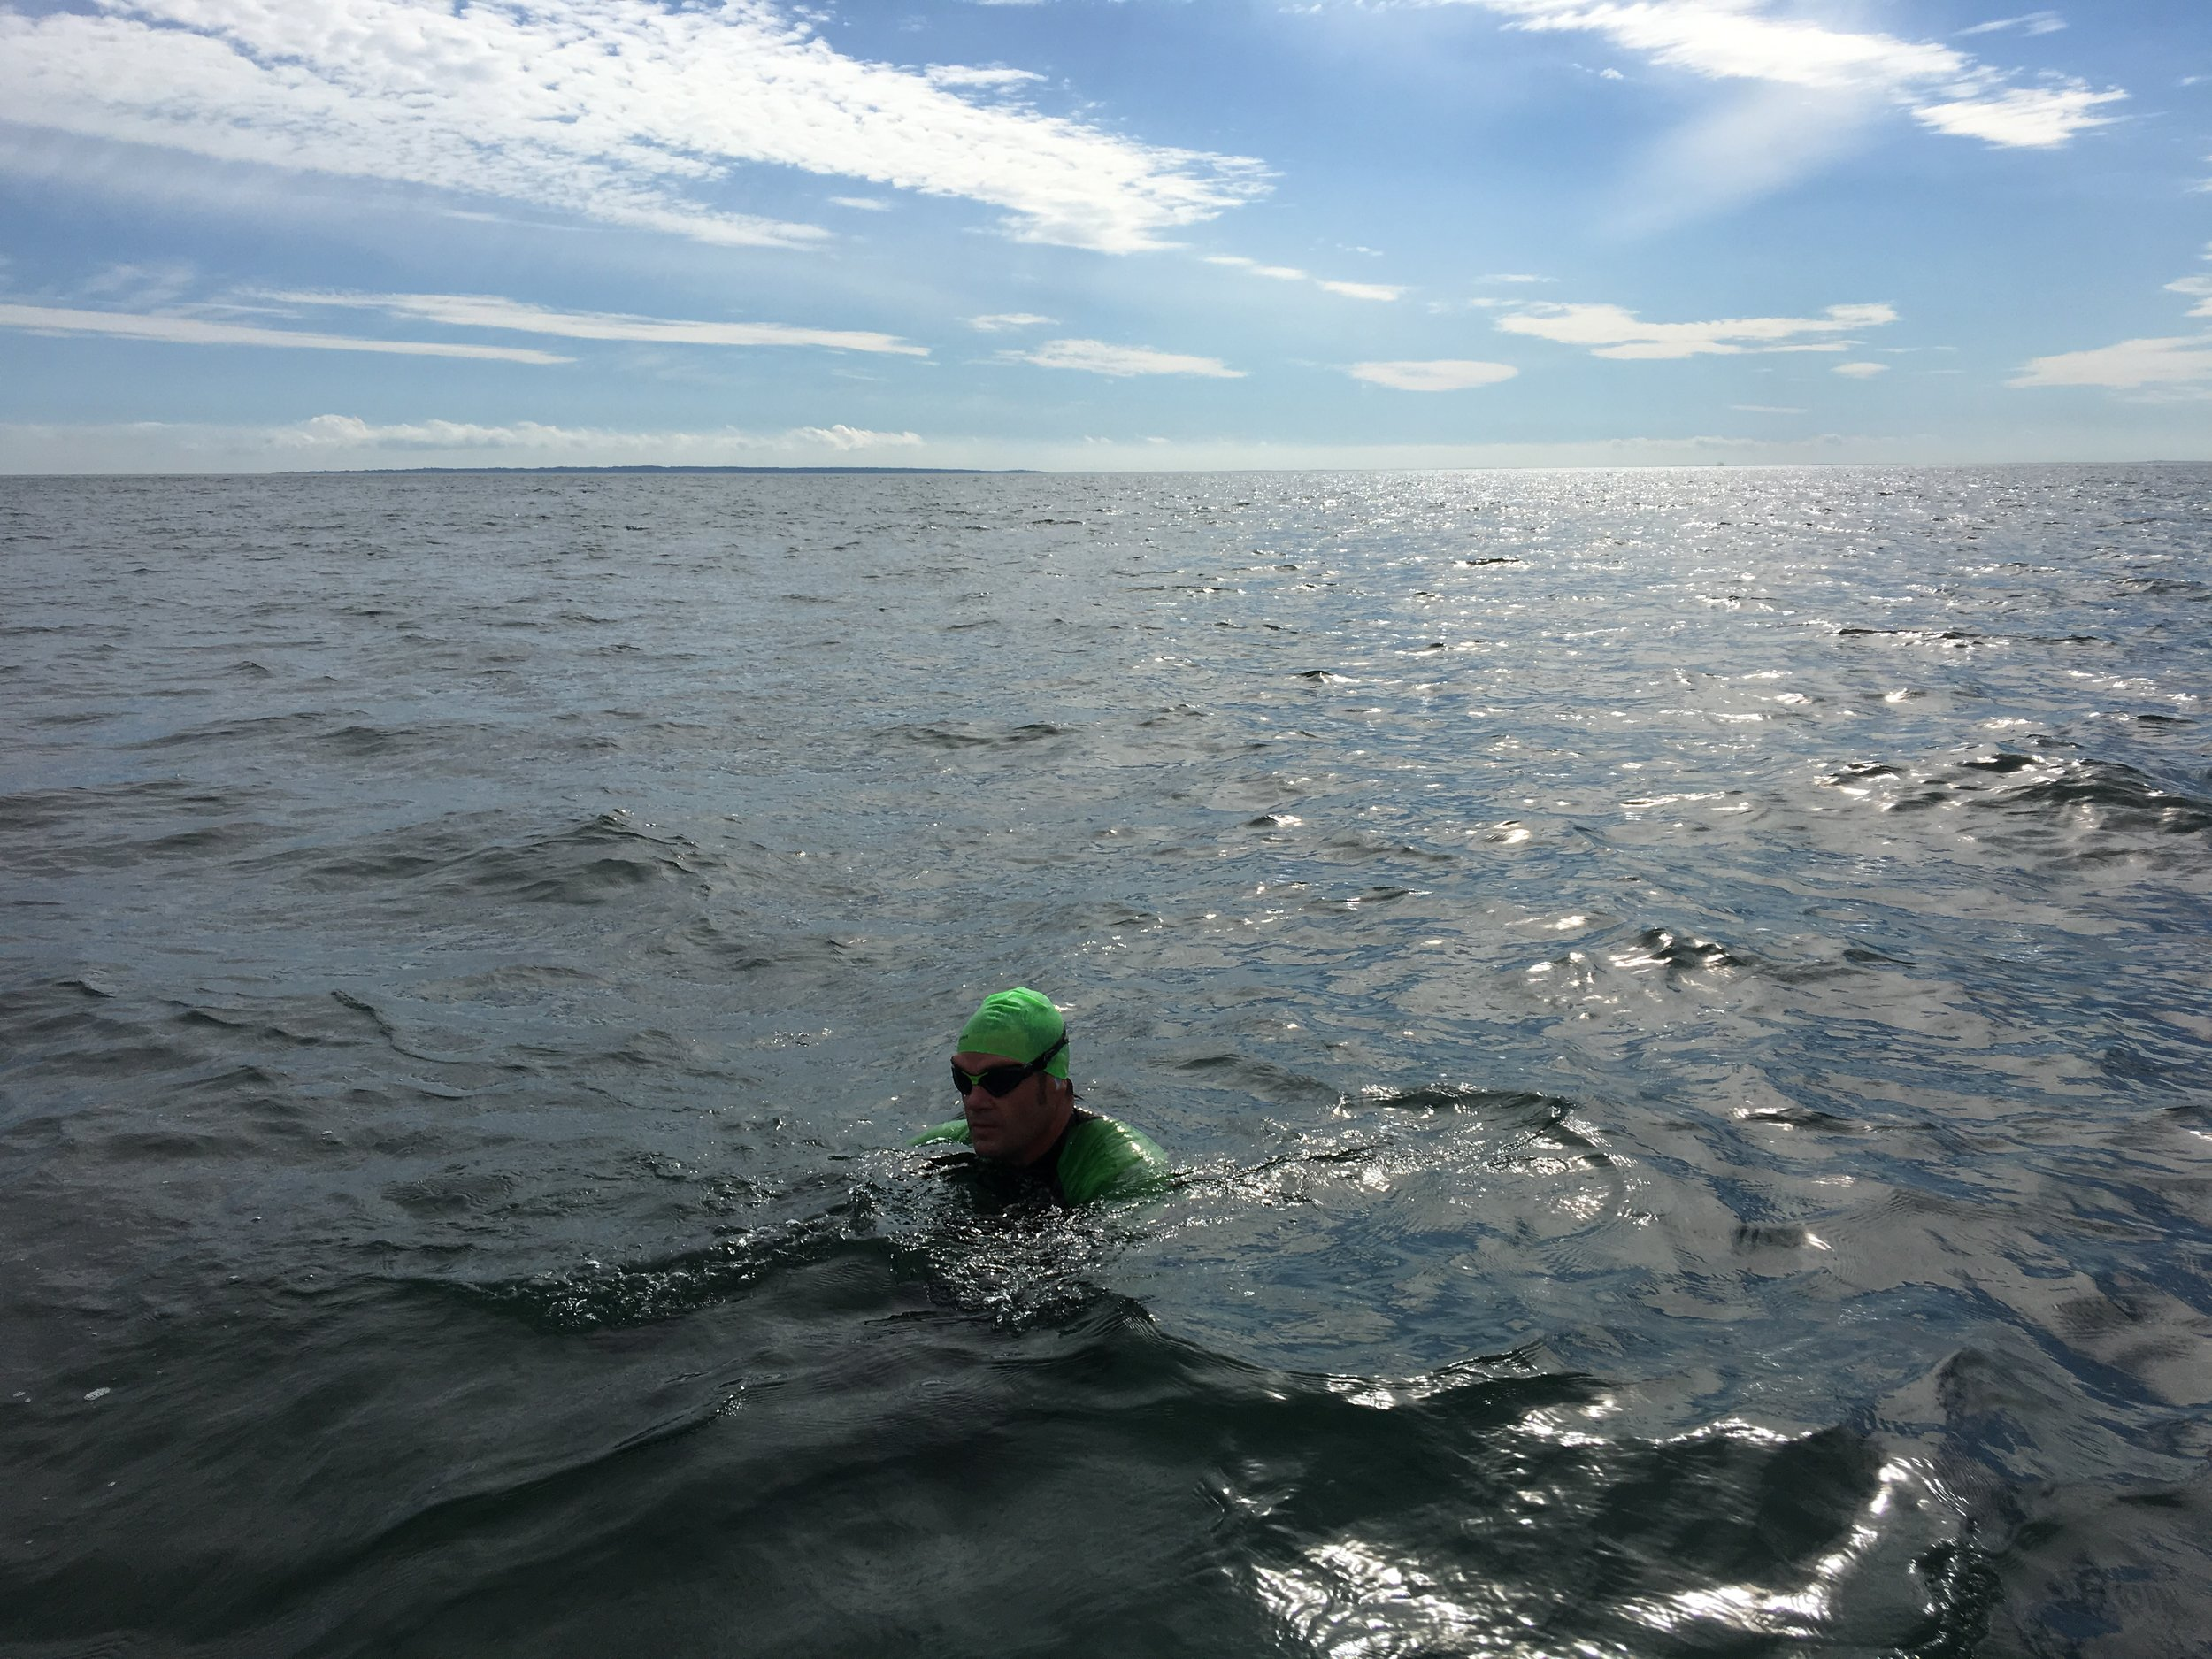 Christopher Swain on day 2 of his 130-mile Montauk to NYC Swim For Clean Water